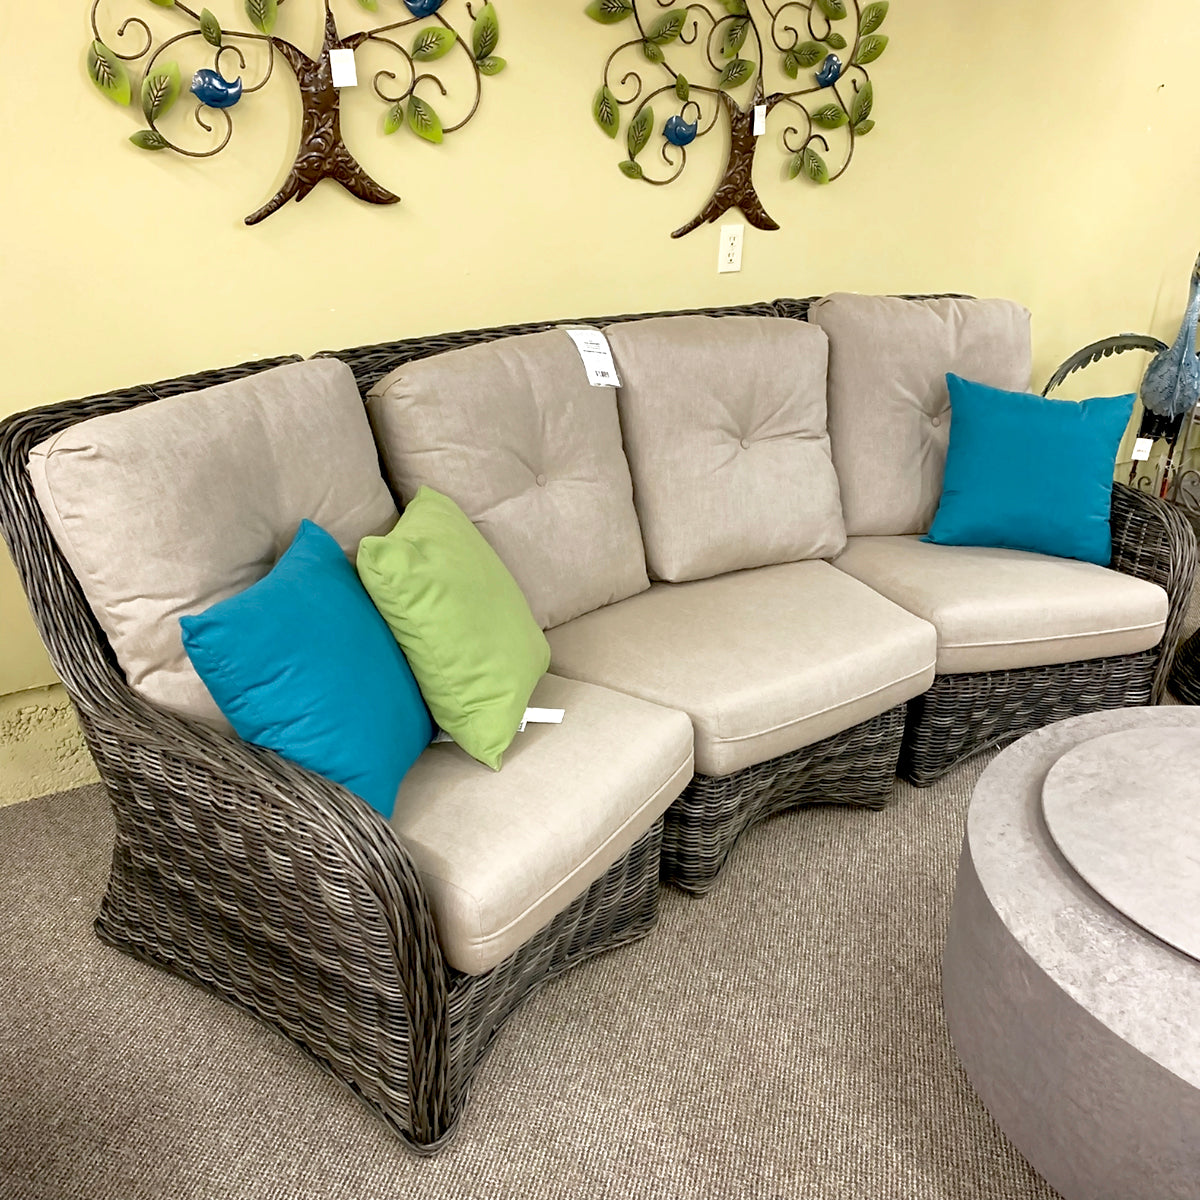 West Hampton Patio Sectional is available at Jacobs Custom Living our Jacobs Custom Living Spokane Valley showroom.